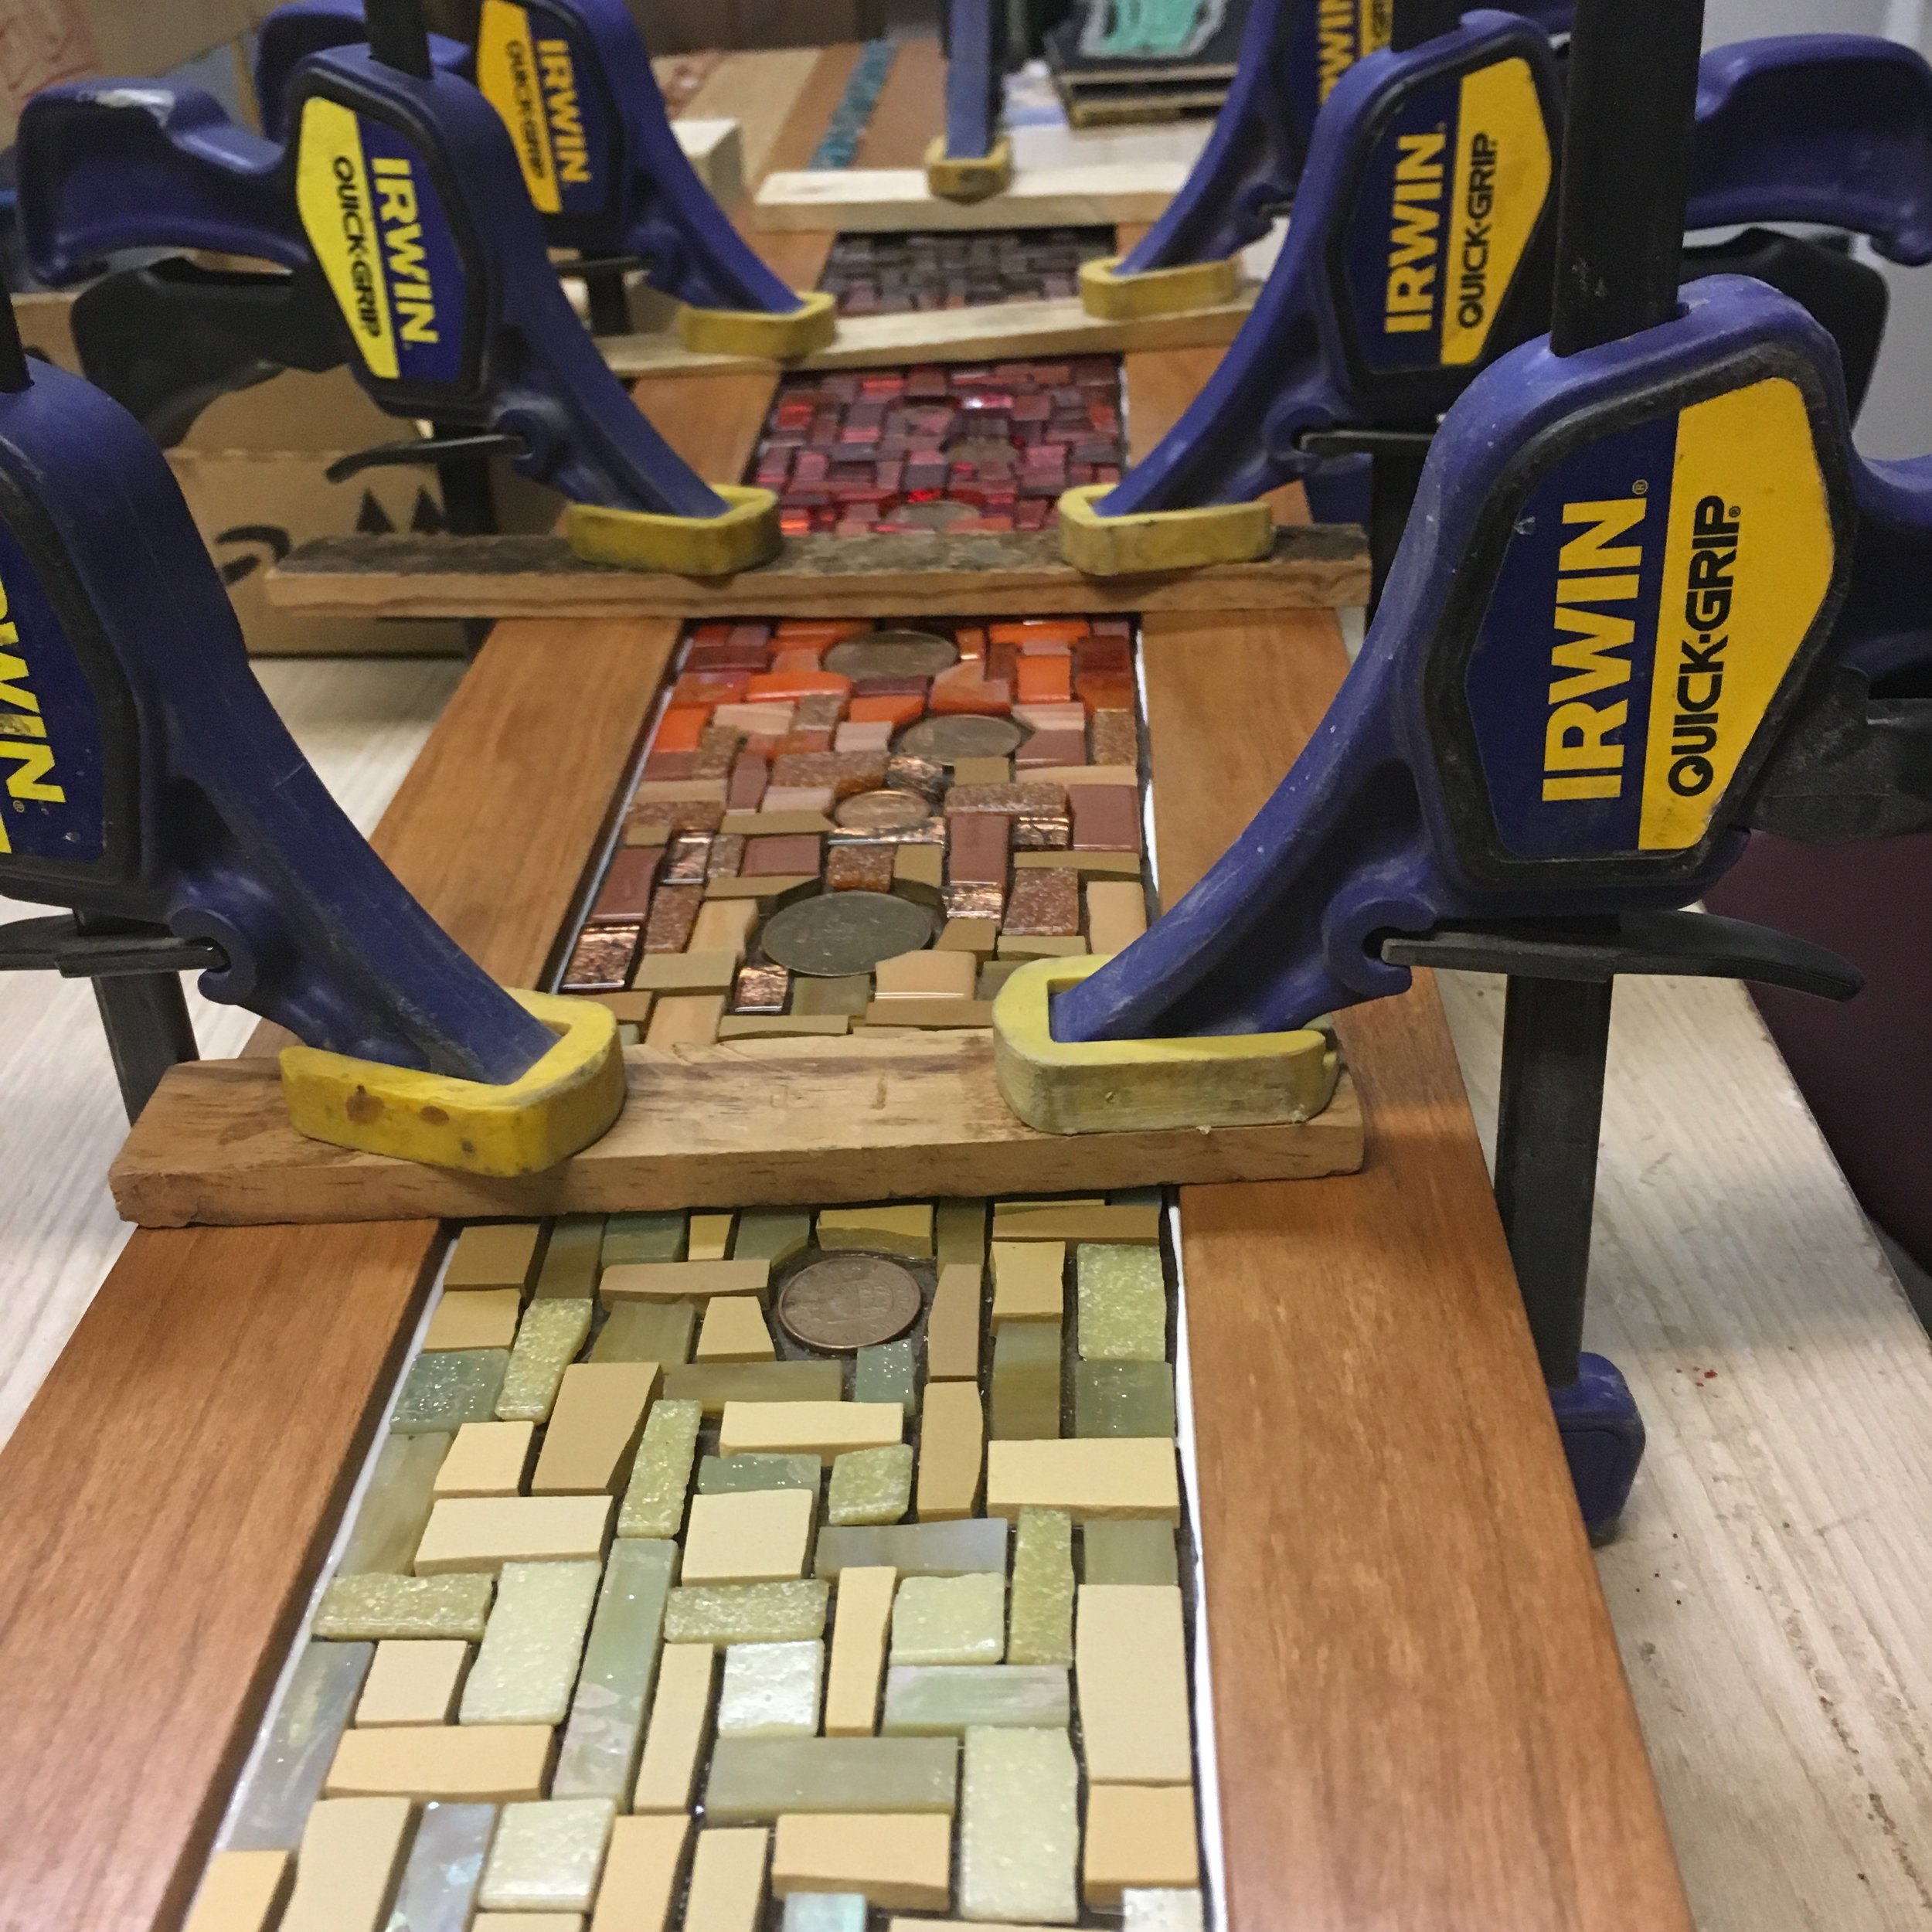 Gluing the mosaic into the frame